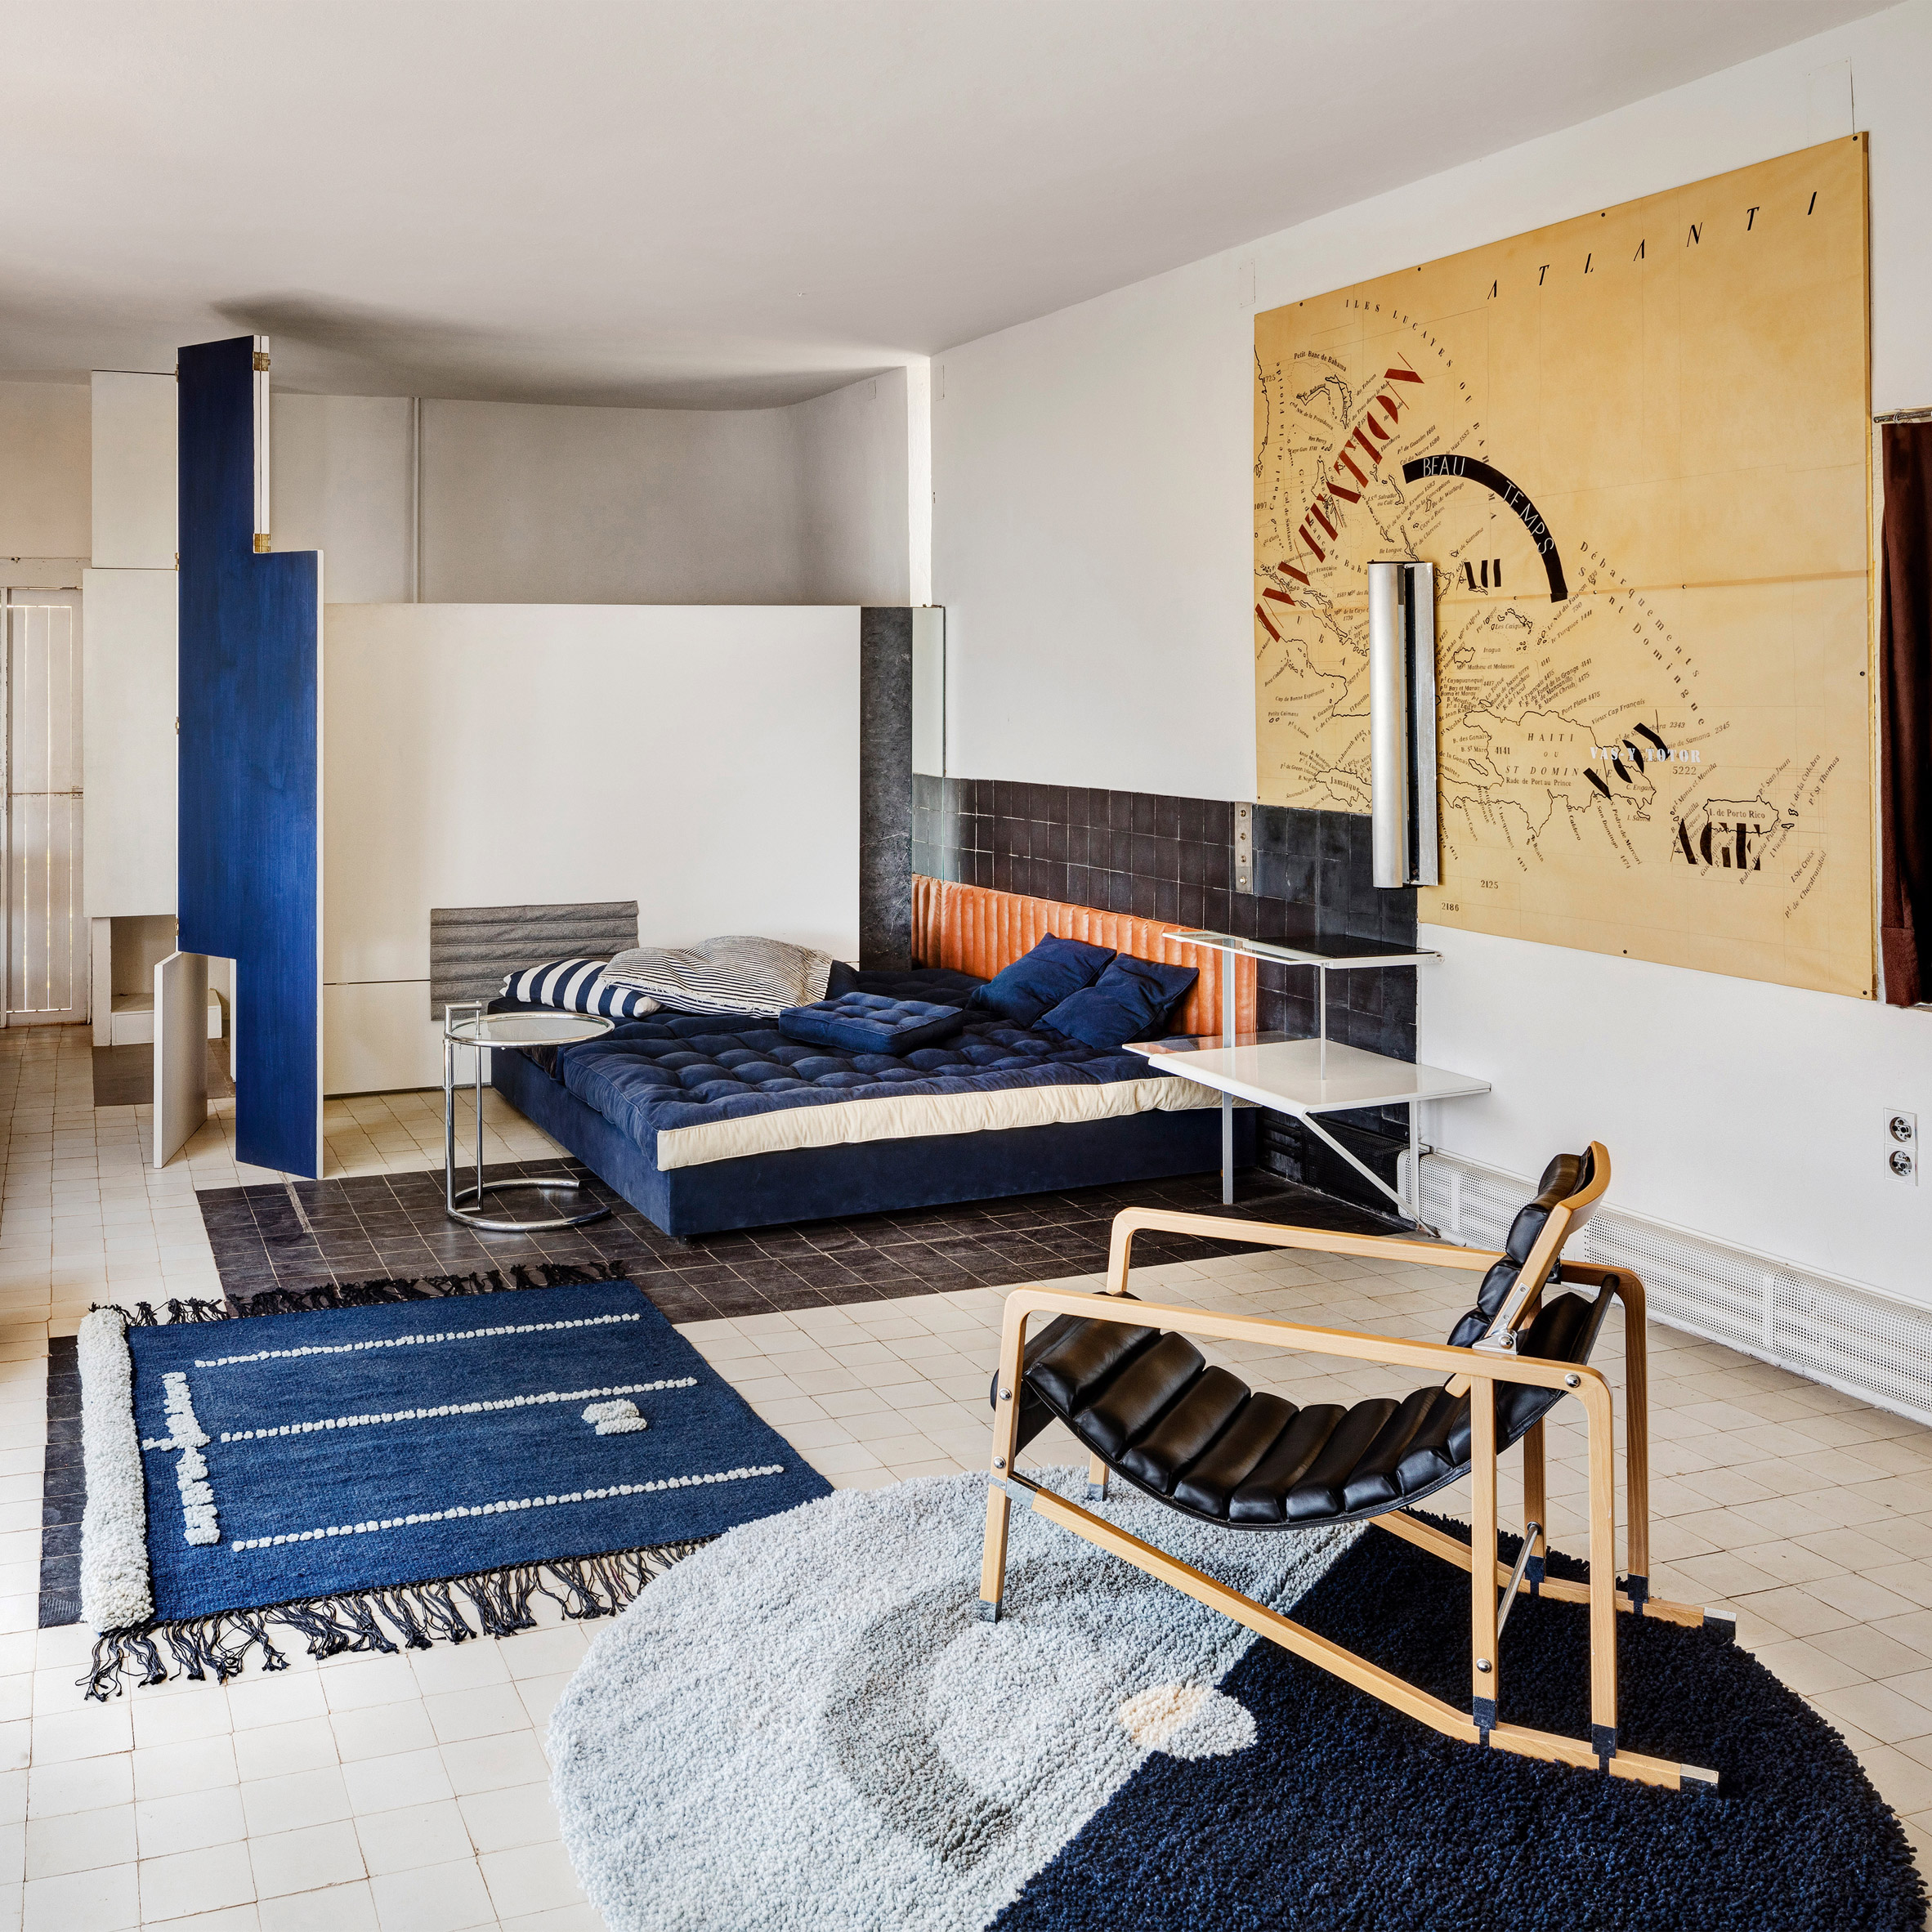 The living area of Eileen Gray's house